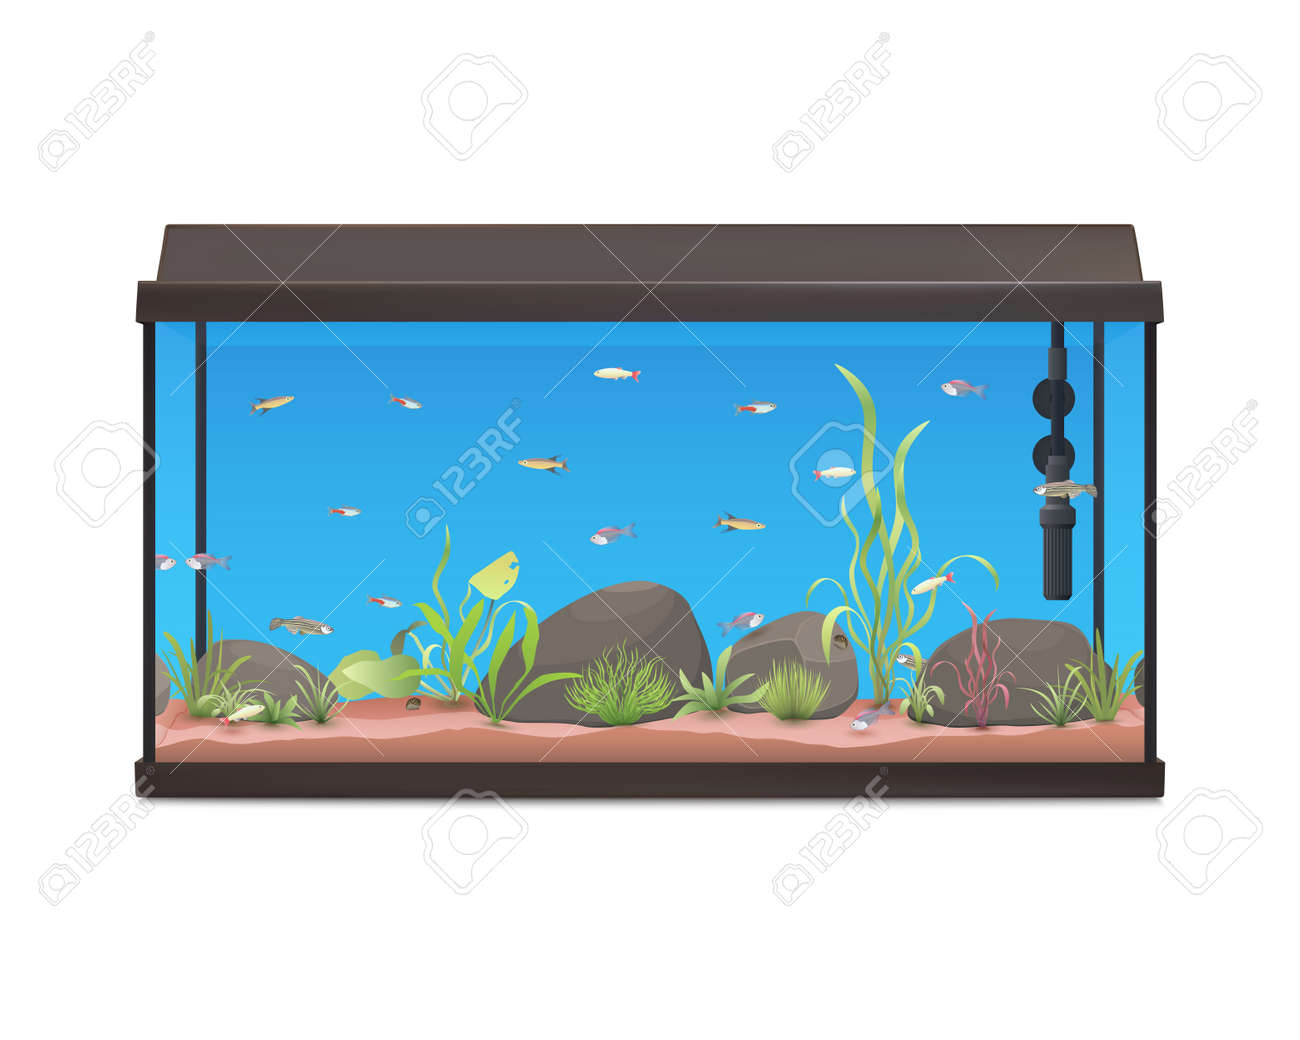 Aquarium Illustration With Fishes Stones And Plants Fish Tank Royalty Free Cliparts Vectors And Stock Illustration Image 58826590